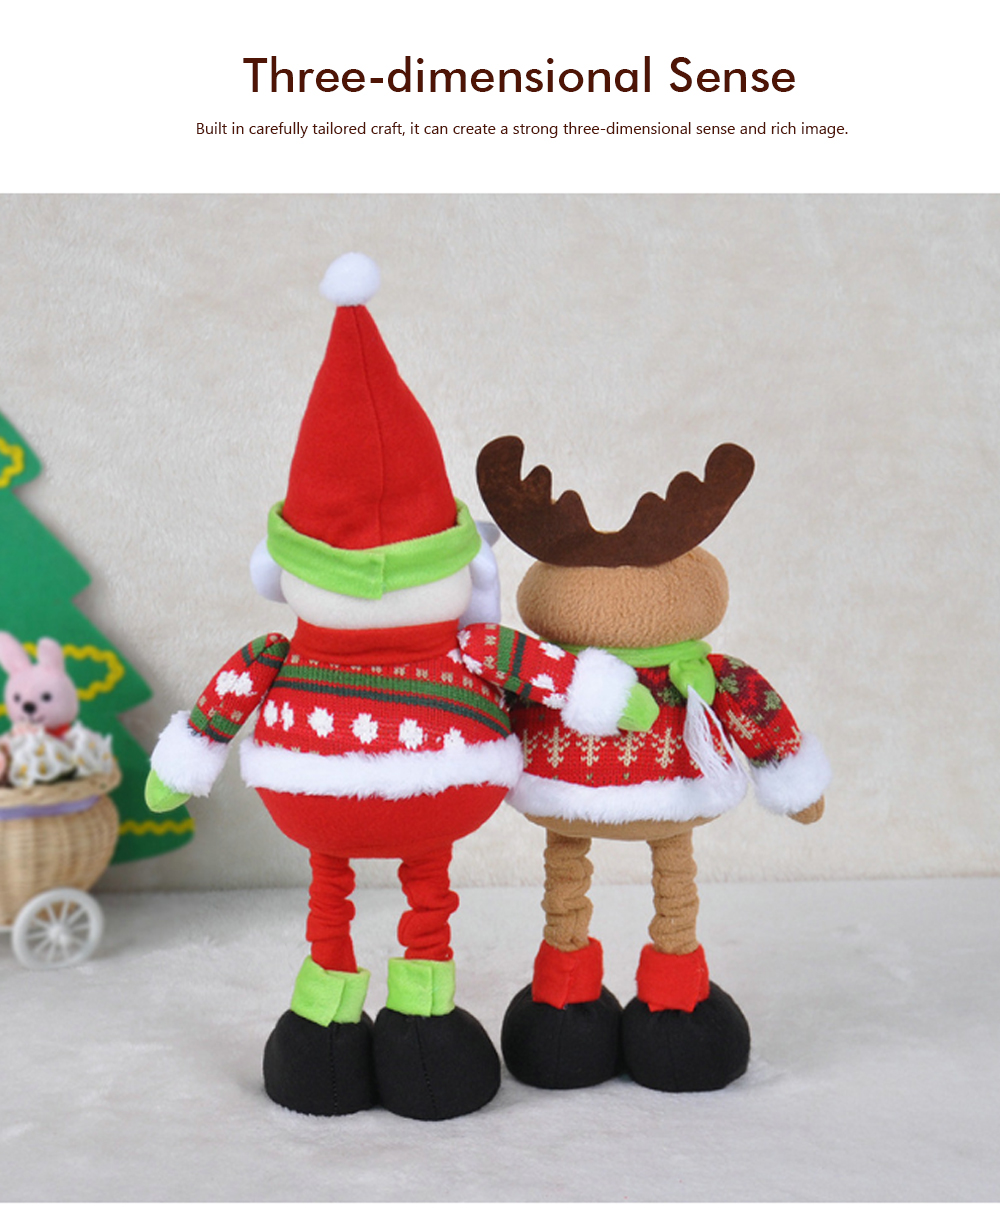 Standing Telescopic Santa Snowman, Figurine Santa Claus Posing Christmas Doll for Gifts 5